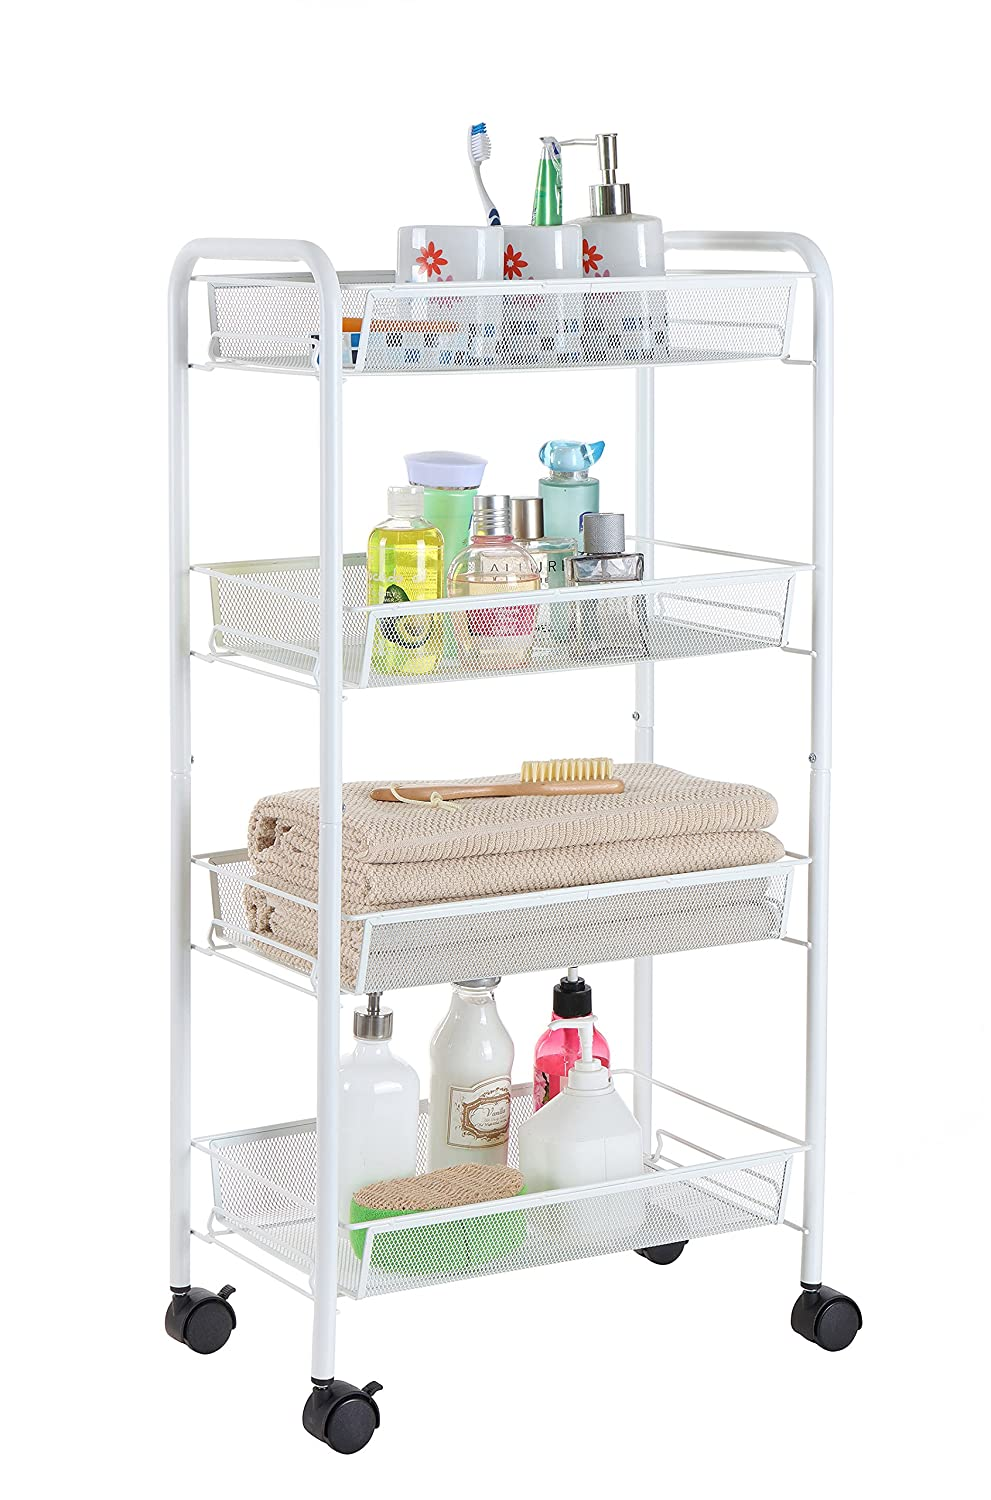 Finnhomy 4 Tier Metal Mesh Shelf Multi Purpose Rolling Utility Storage Cart with 3 Baskets, Laundry Cart, Space Saver, Perfect for Home Accessories, Laundry, Kitchen and Office Suppliers